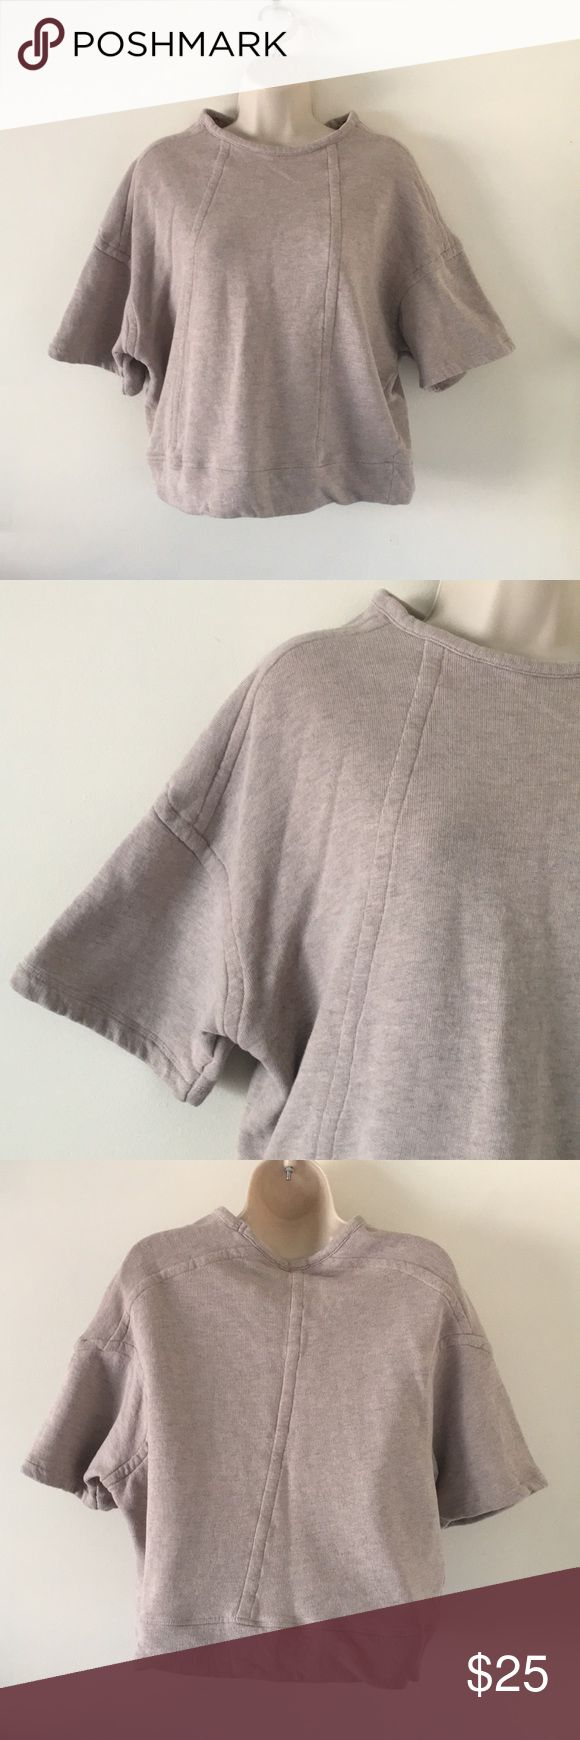 Zara W&B Coll.  oversize short sleeve sweatshirt 99 cotton 1 viscose. Slouchy short sleeve sweatshirt.  It's a Heather grey with slit brown tint. Meaning not completely a grey color. Very stretchy. Zara Tops Sweatshirts & Hoodies